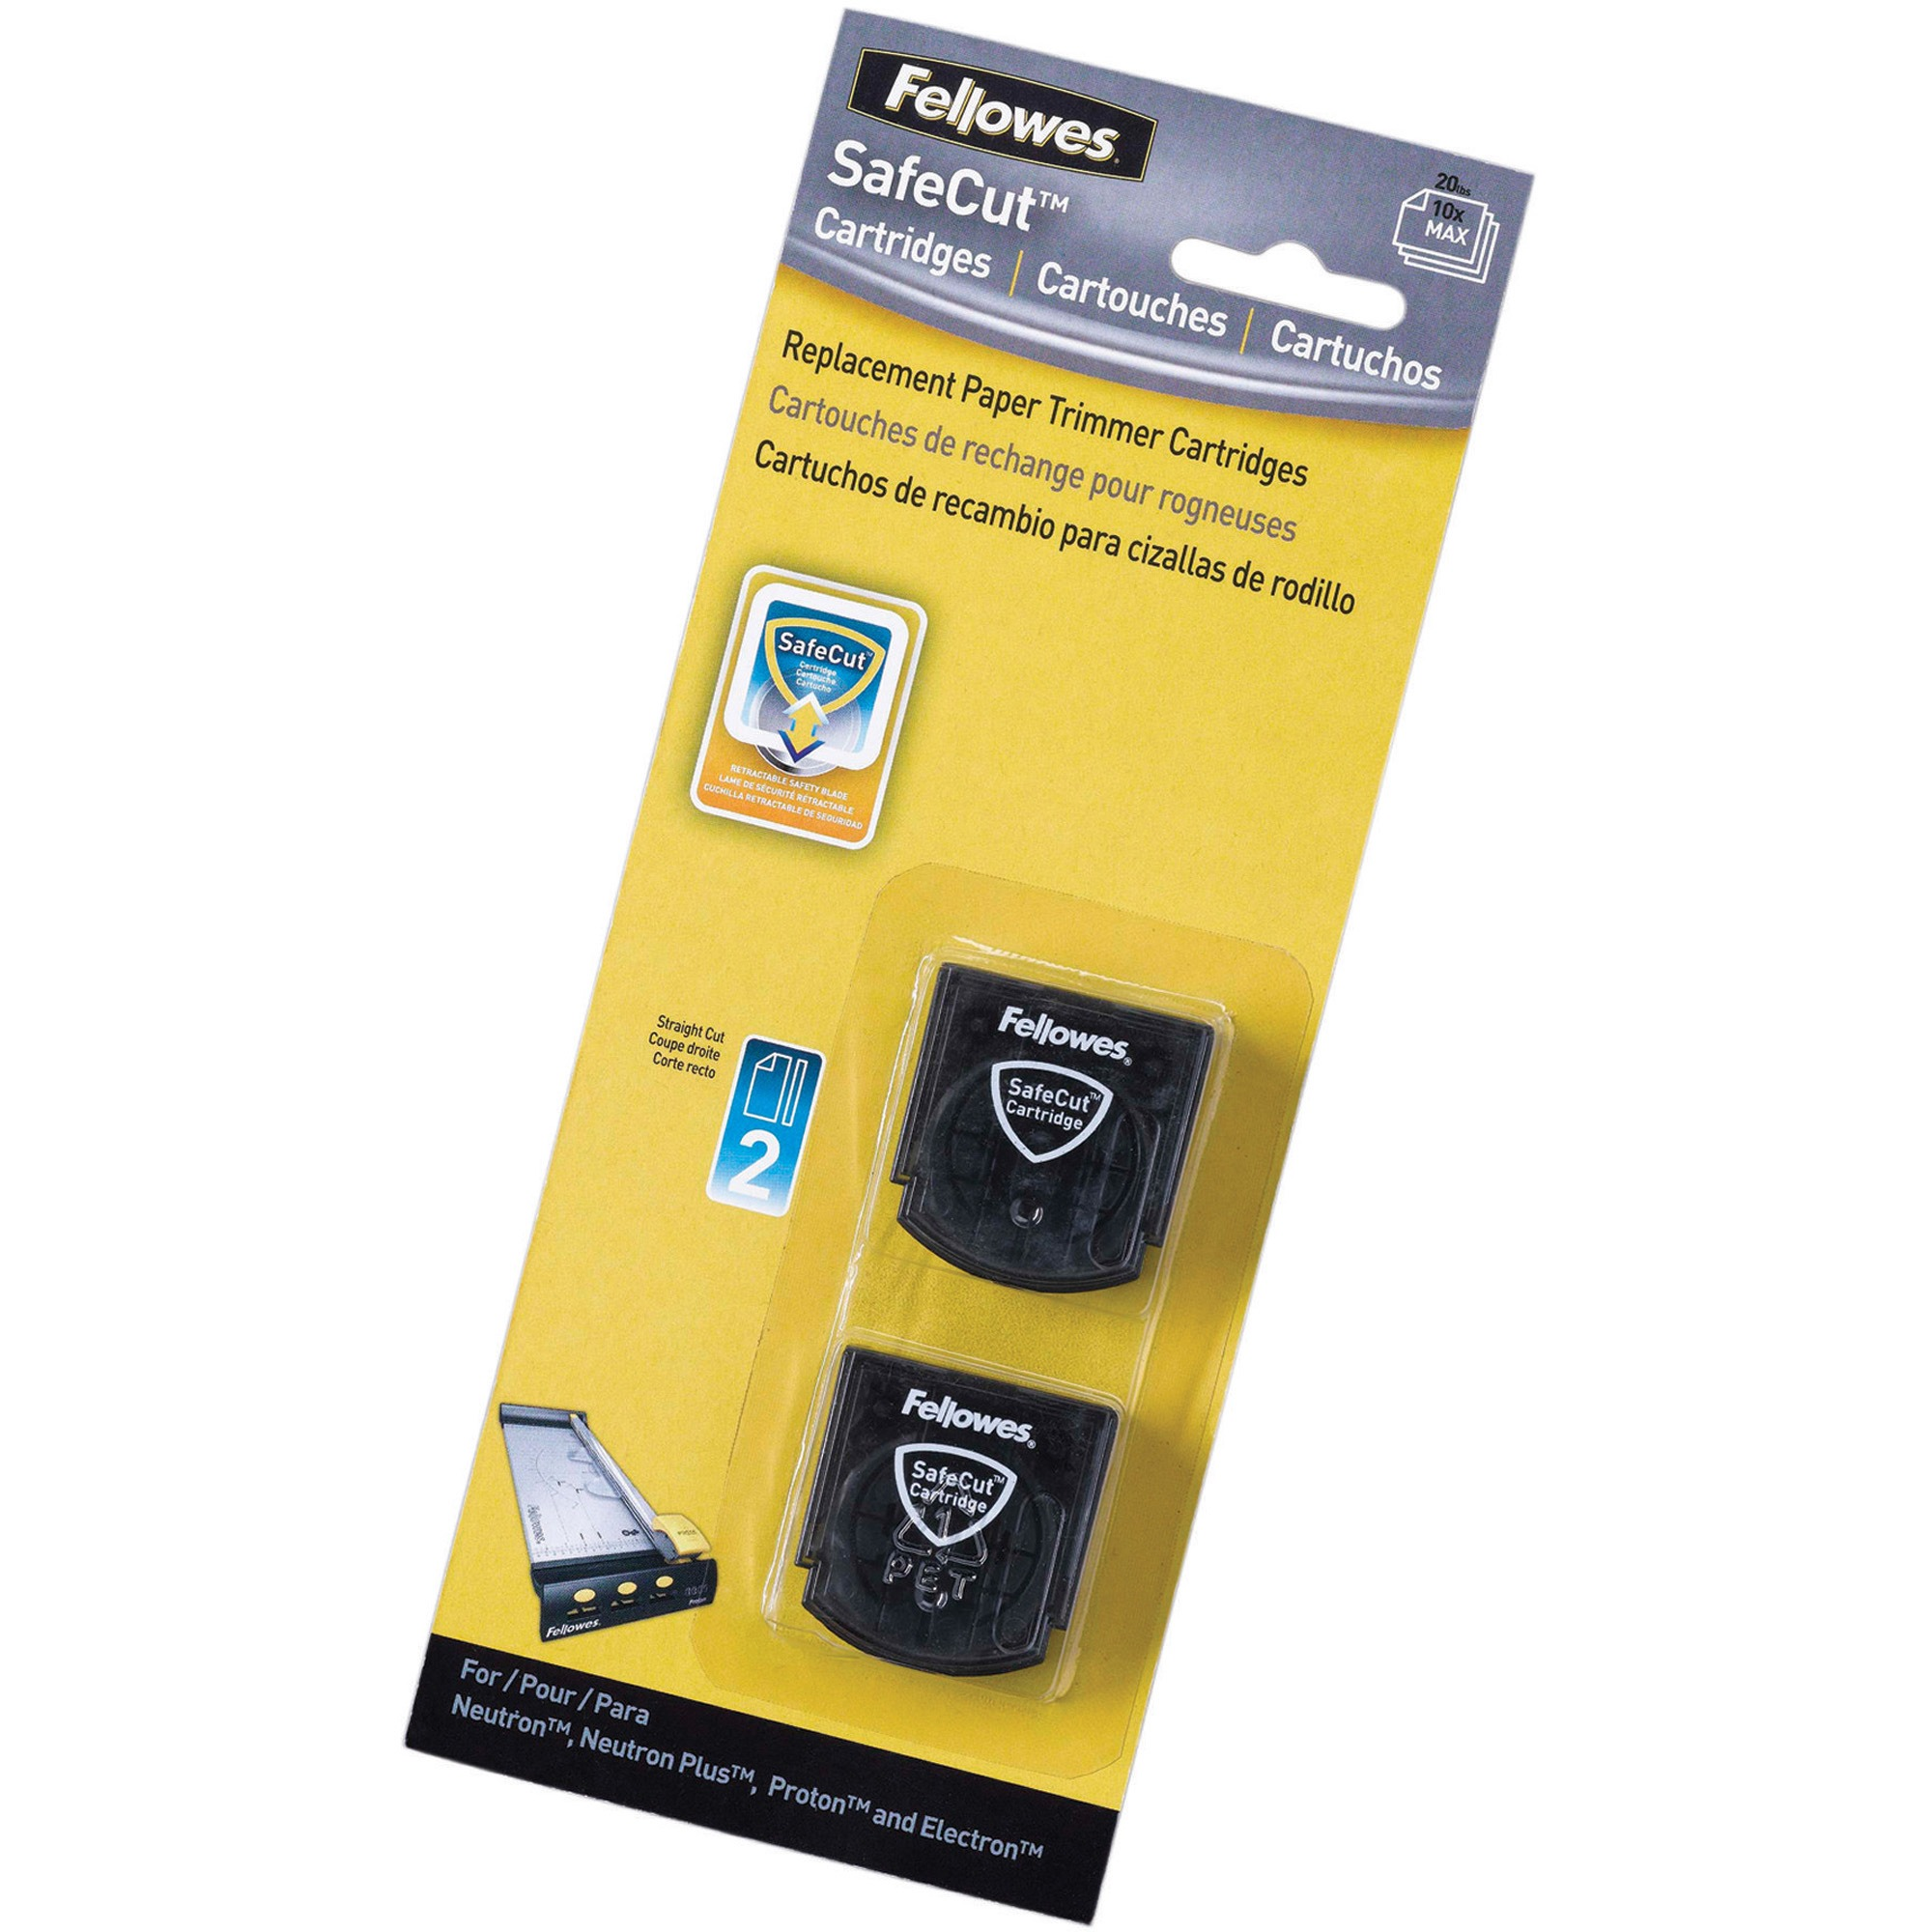 Fellowes SafeCut Rotary Trimmer Blades - 2Pk Straight, Black, 2 / Pack (Quantity)